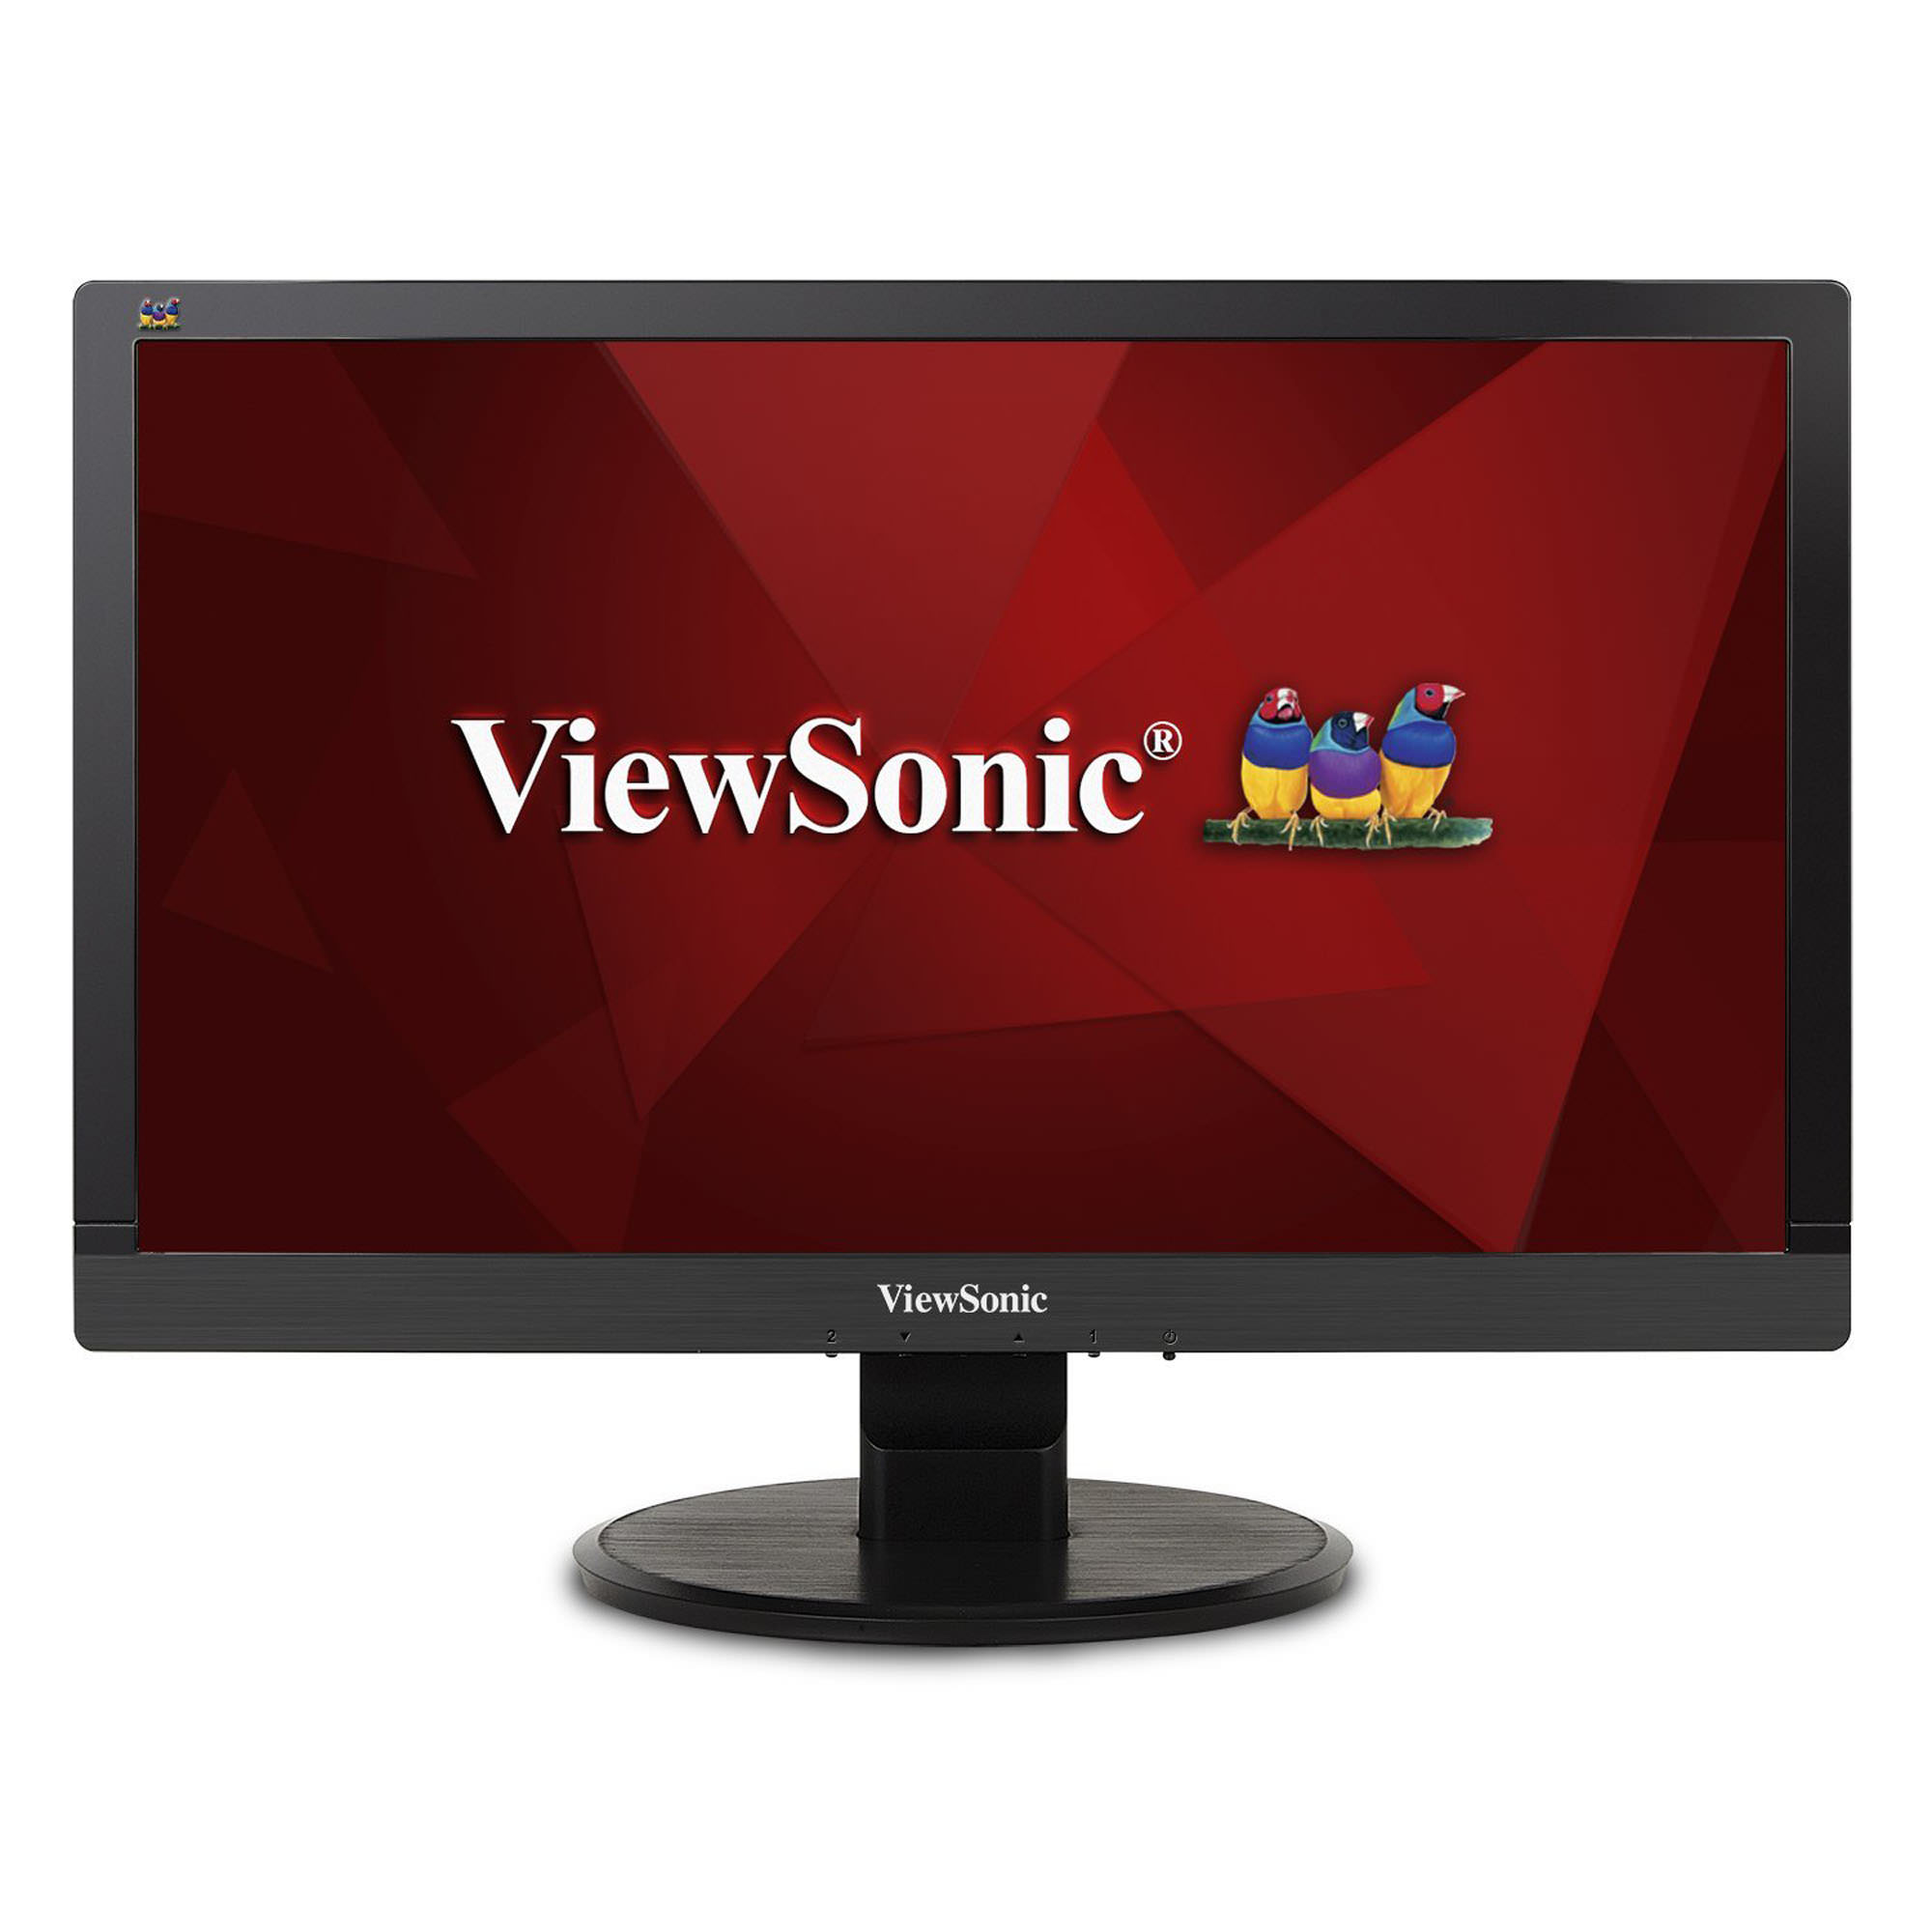 "ViewSonic VA2055SM 20"" (19.5 inch Vis) Widescreen LED Monitor, 1920x1080, 250 nits, 3,000:1 Contrast Ratio, VGA and DVI inputs, integrated speakers"